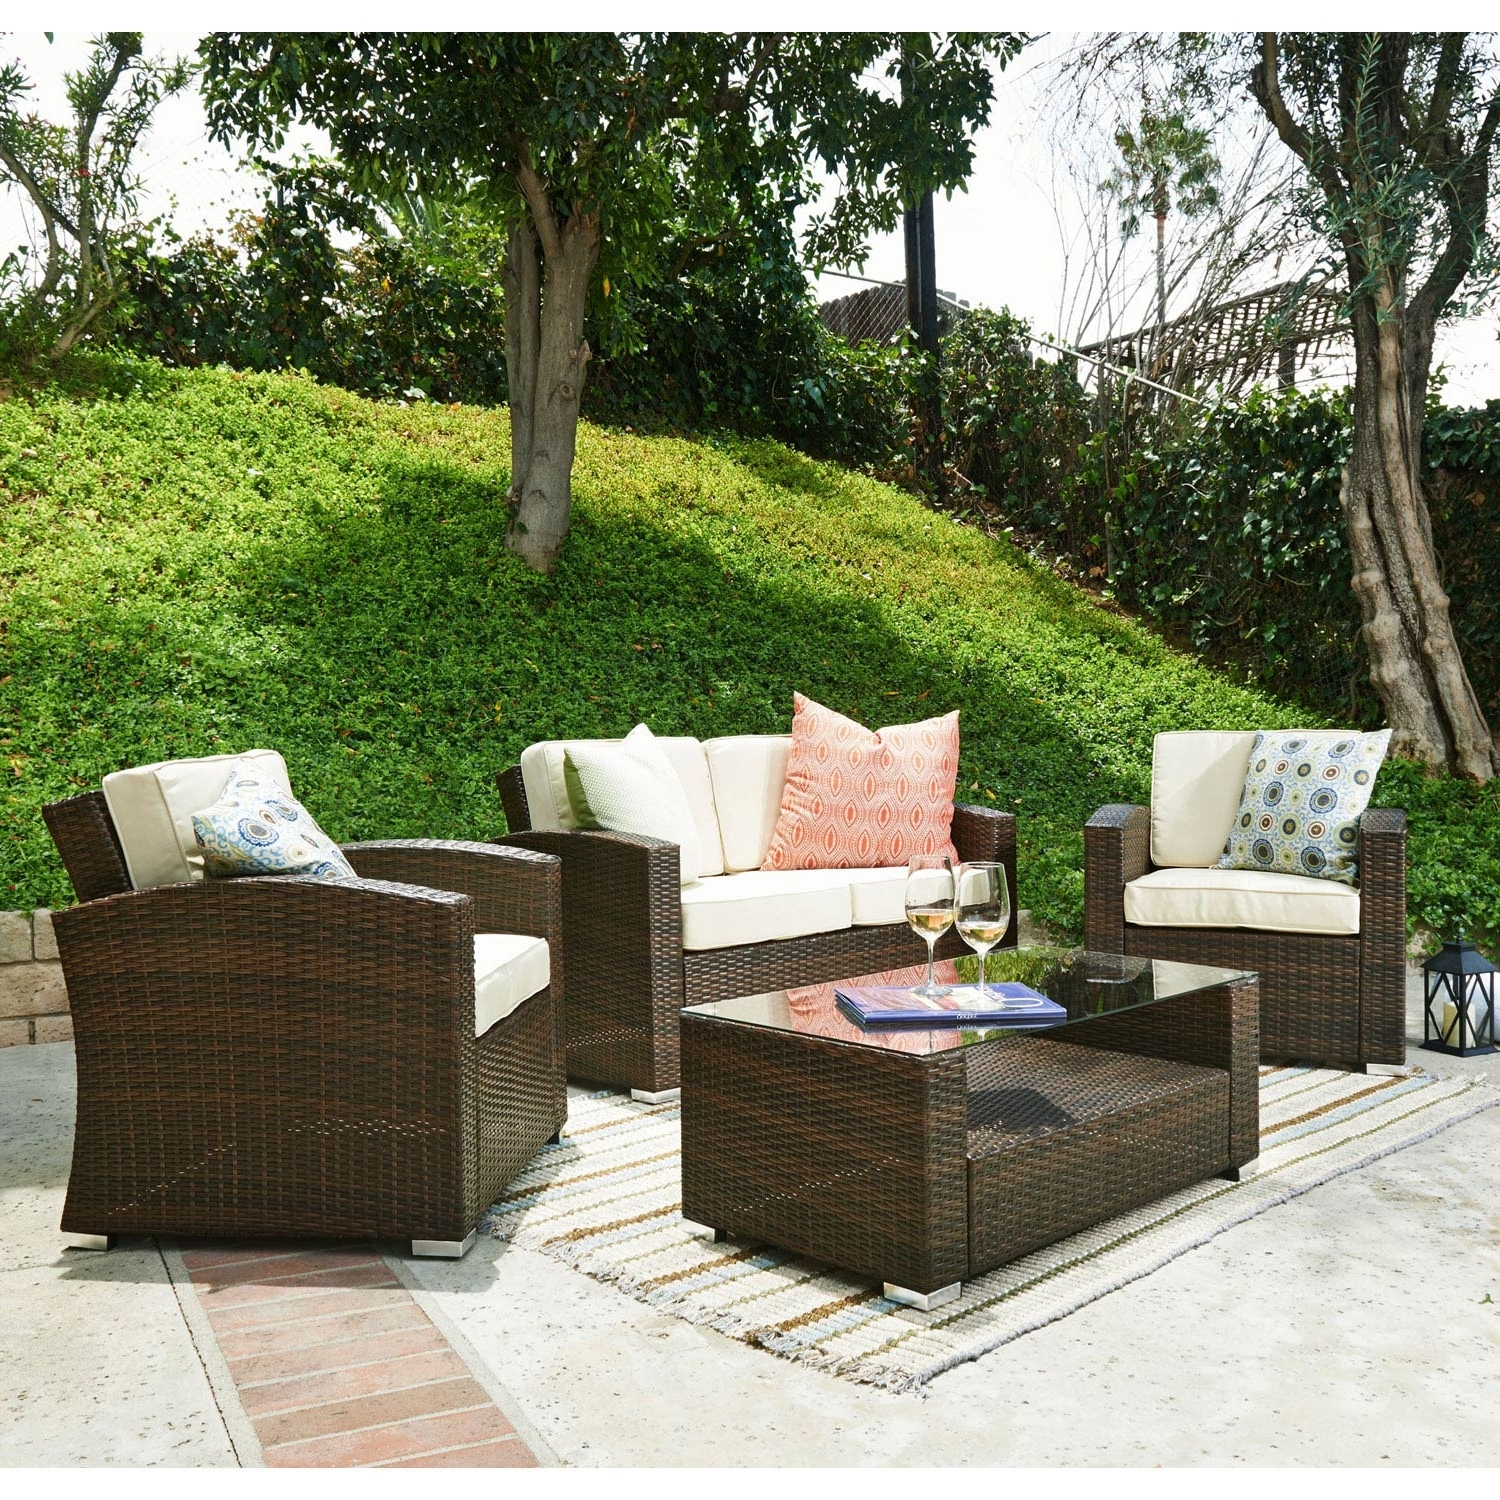 30 Amazing Patio Furniture Conversation Set Ideas Within Most Current Outdoor Patio Furniture Conversation Sets (View 1 of 15)